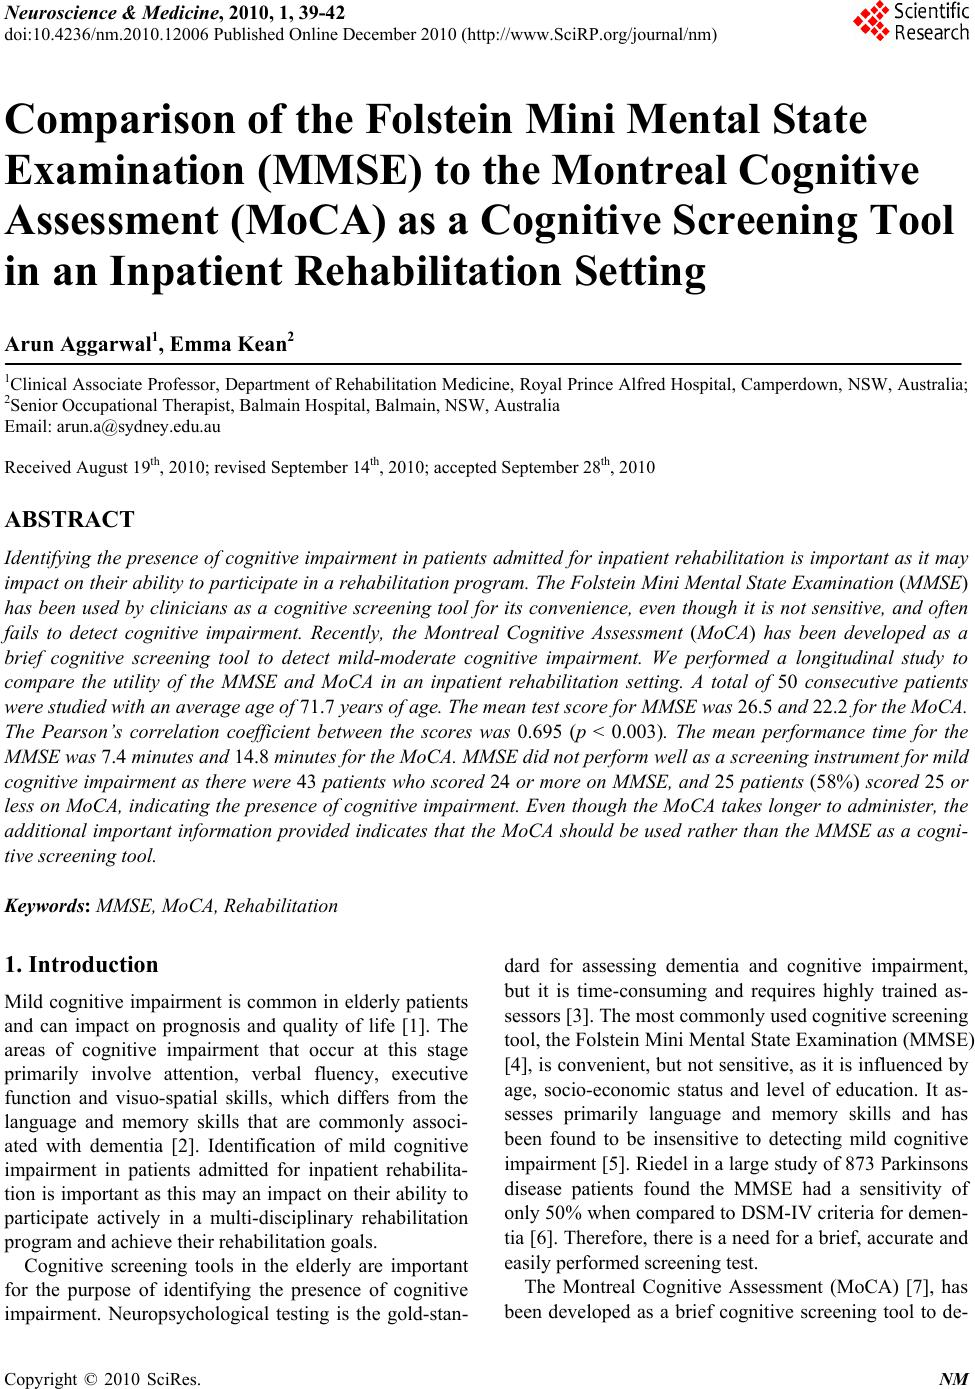 Comparison Of The Folstein Mini Mental State Examination Mmse To The Montreal Cognitive Assessment Moca As A Cognitive Screening Tool In An Inpatient Rehabilitation Setting